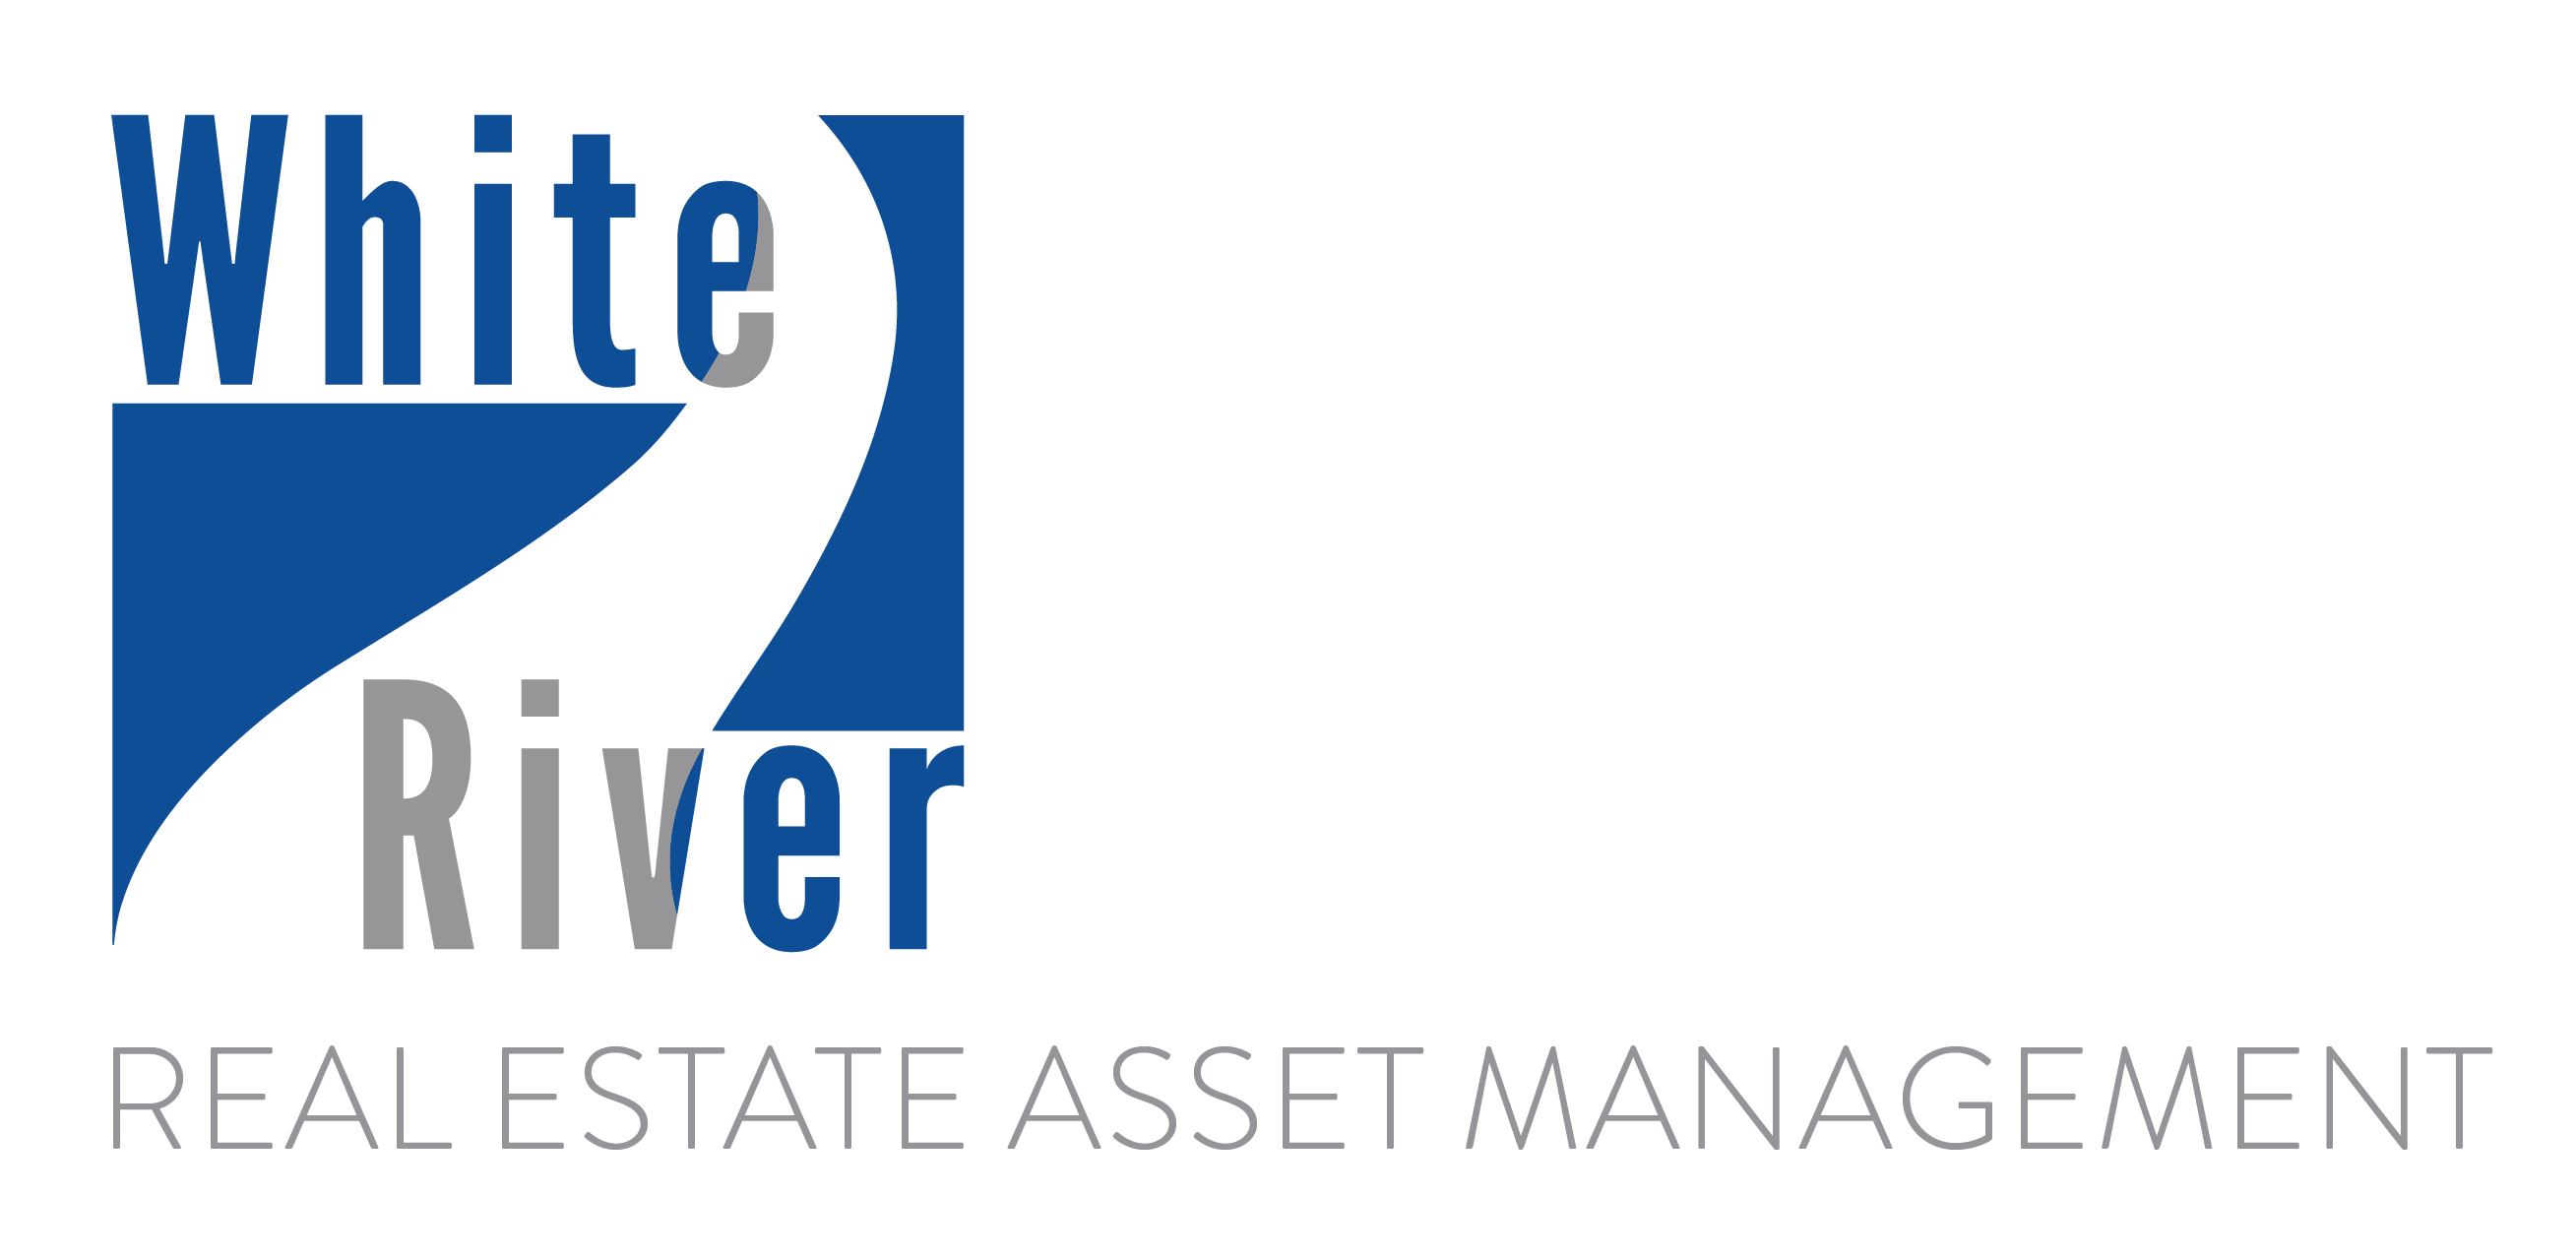 White River - Real Estate Asset Management